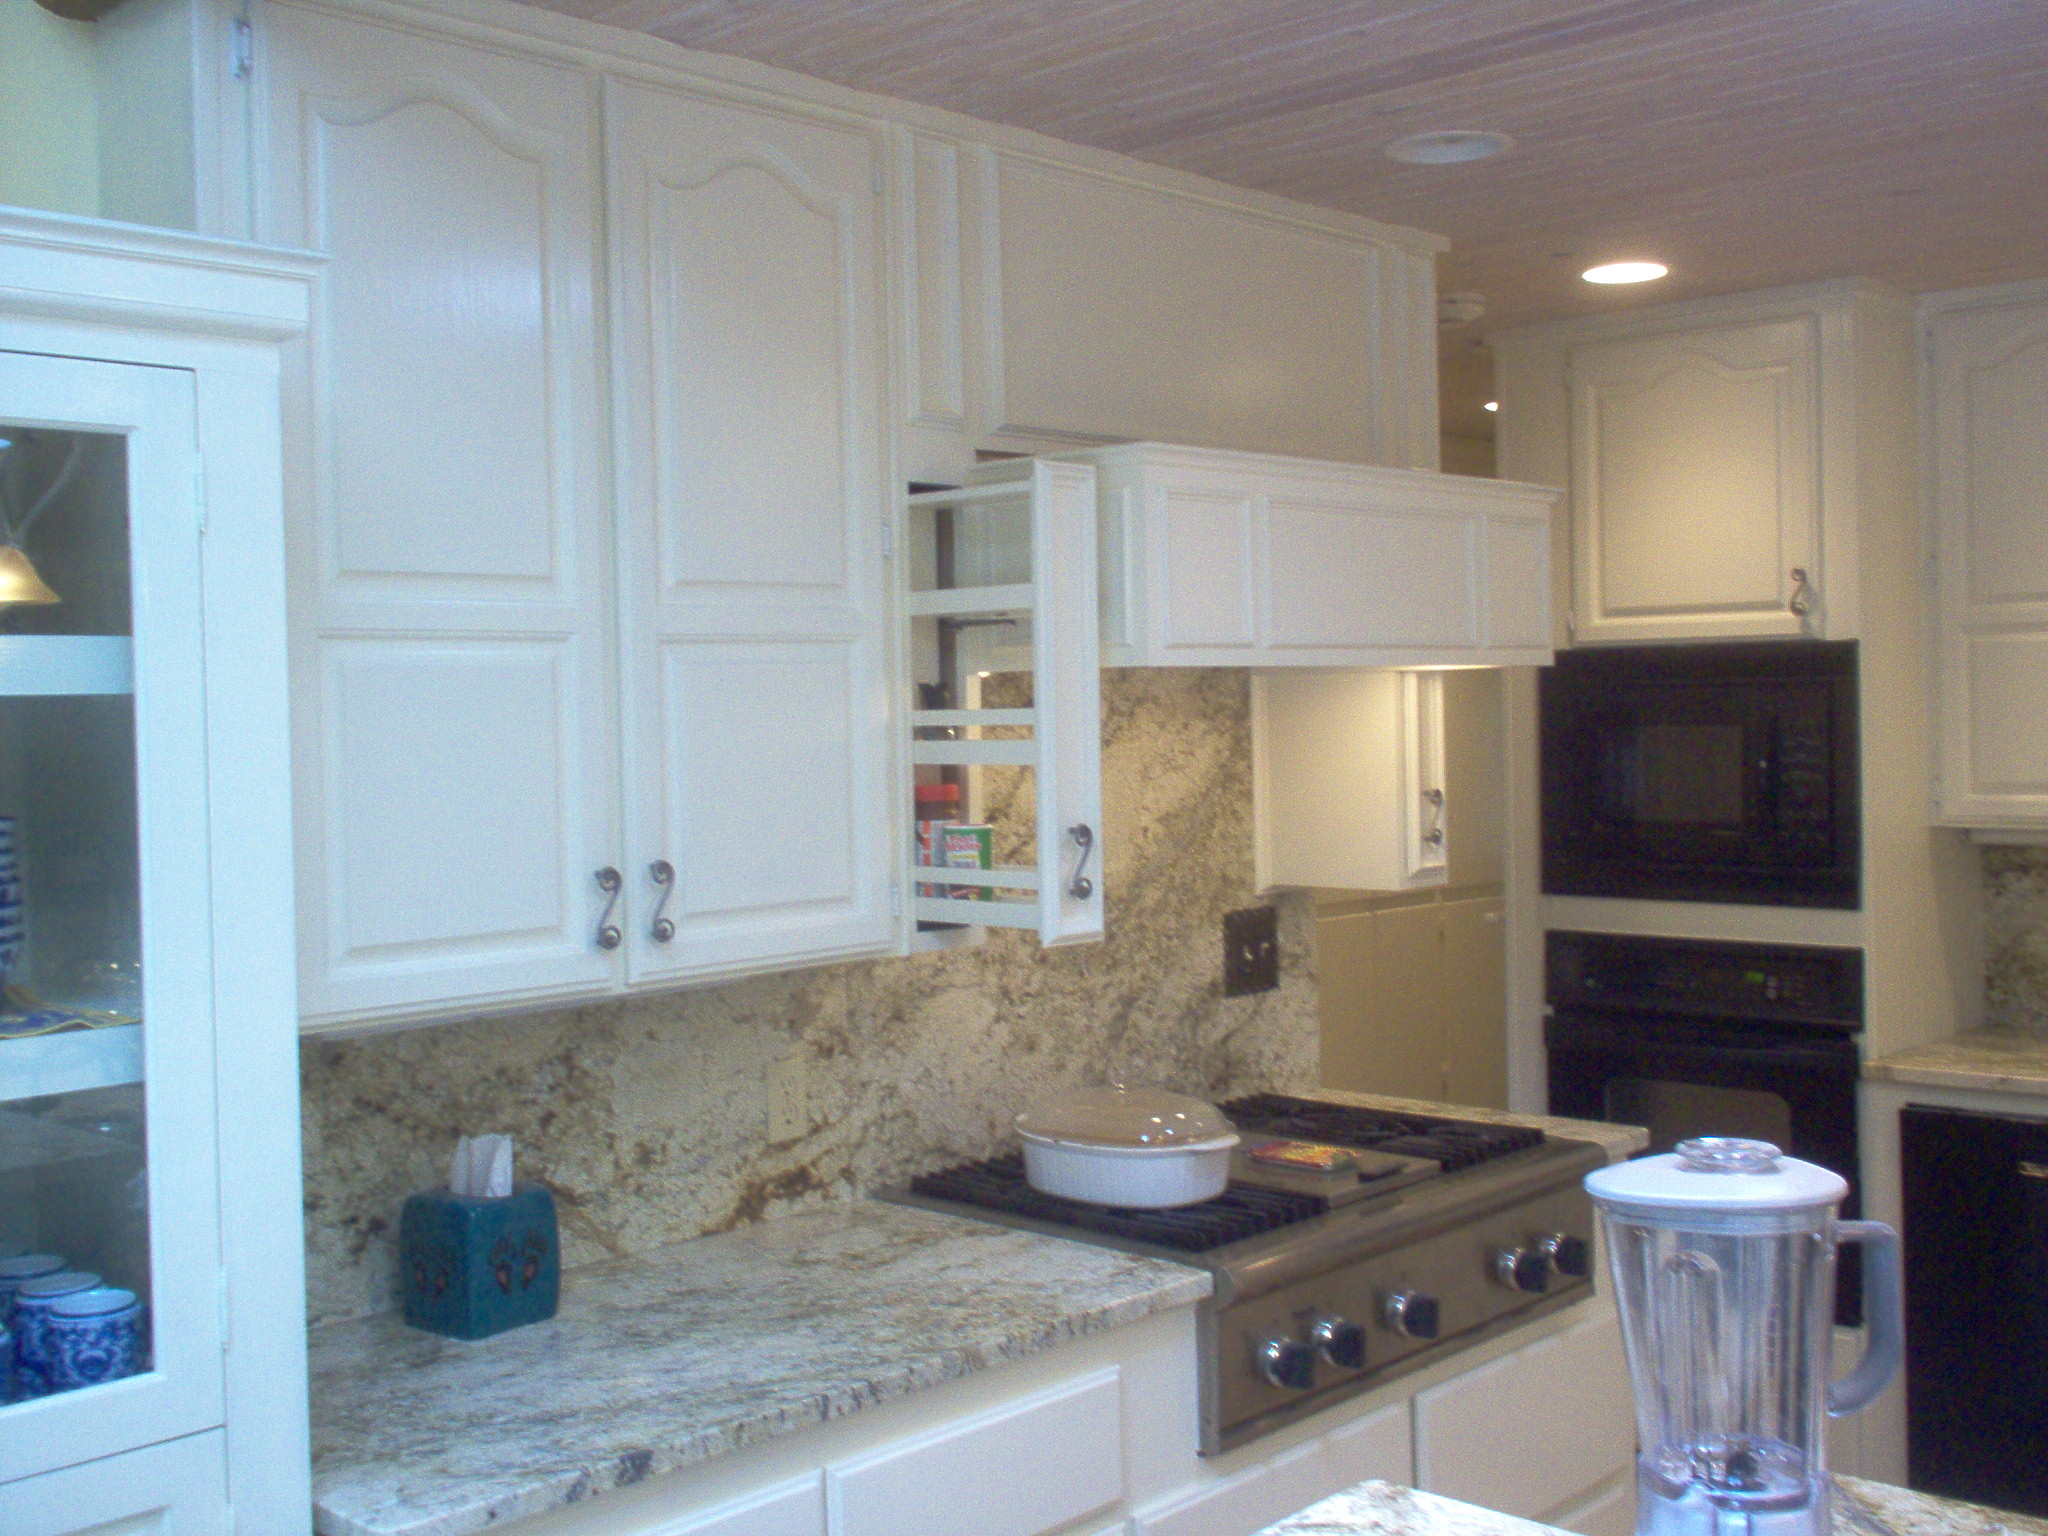 Woller painting remodeling tulsa painters for Remodeling companies